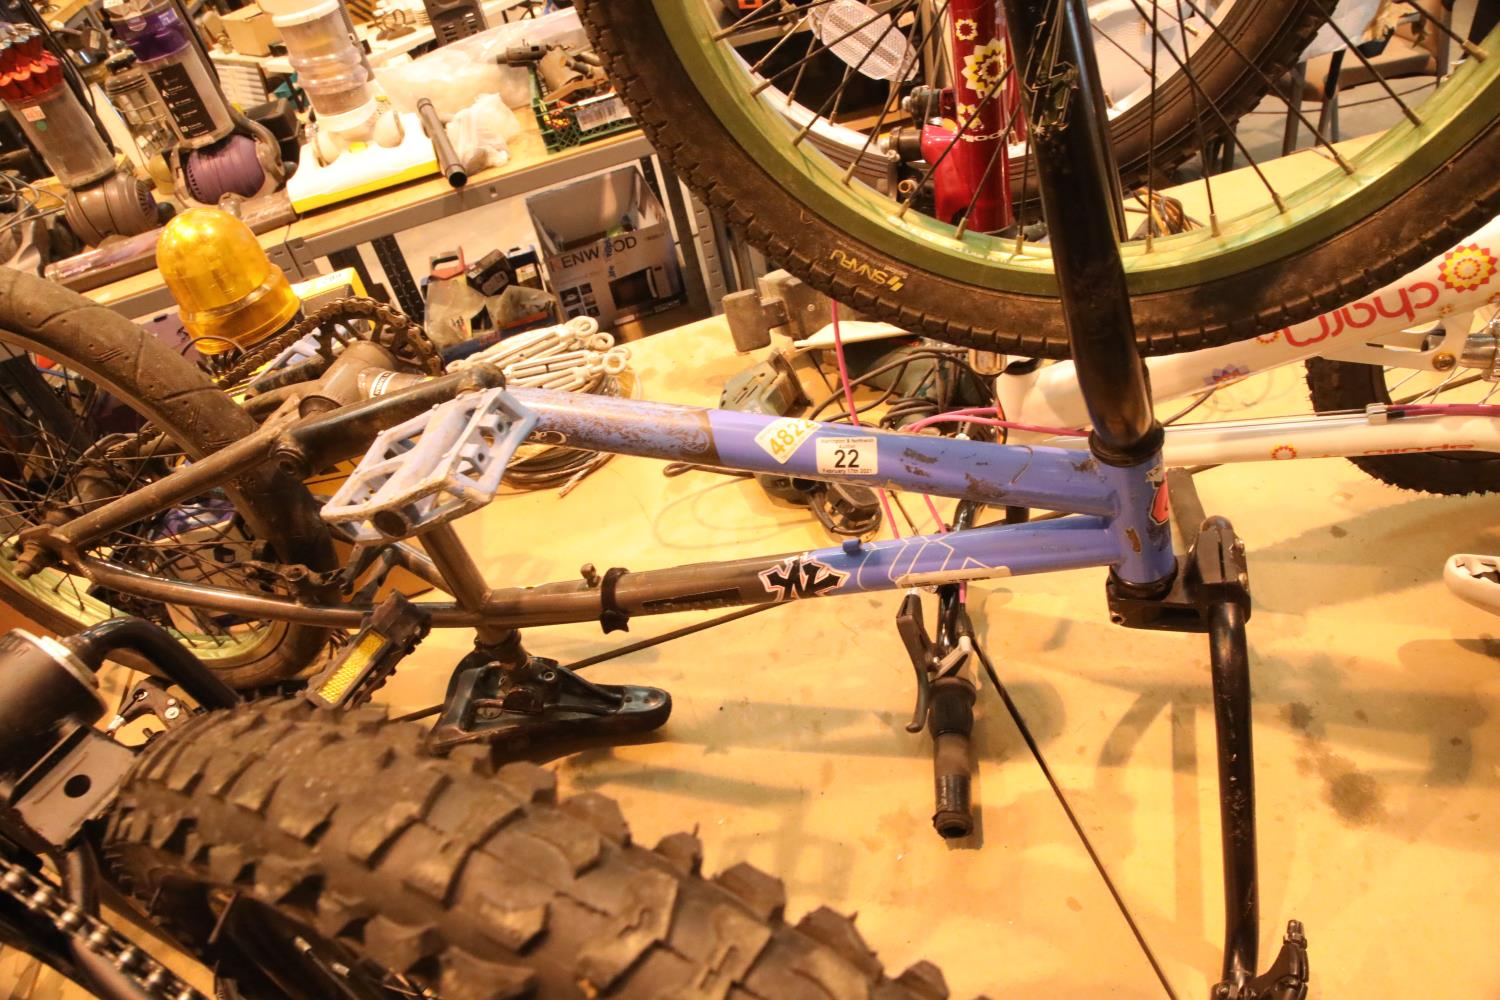 """Mongoose BMX bike with 20"""" wheels. Not available for in-house P&P, contact Paul O'Hea at Mailboxes"""